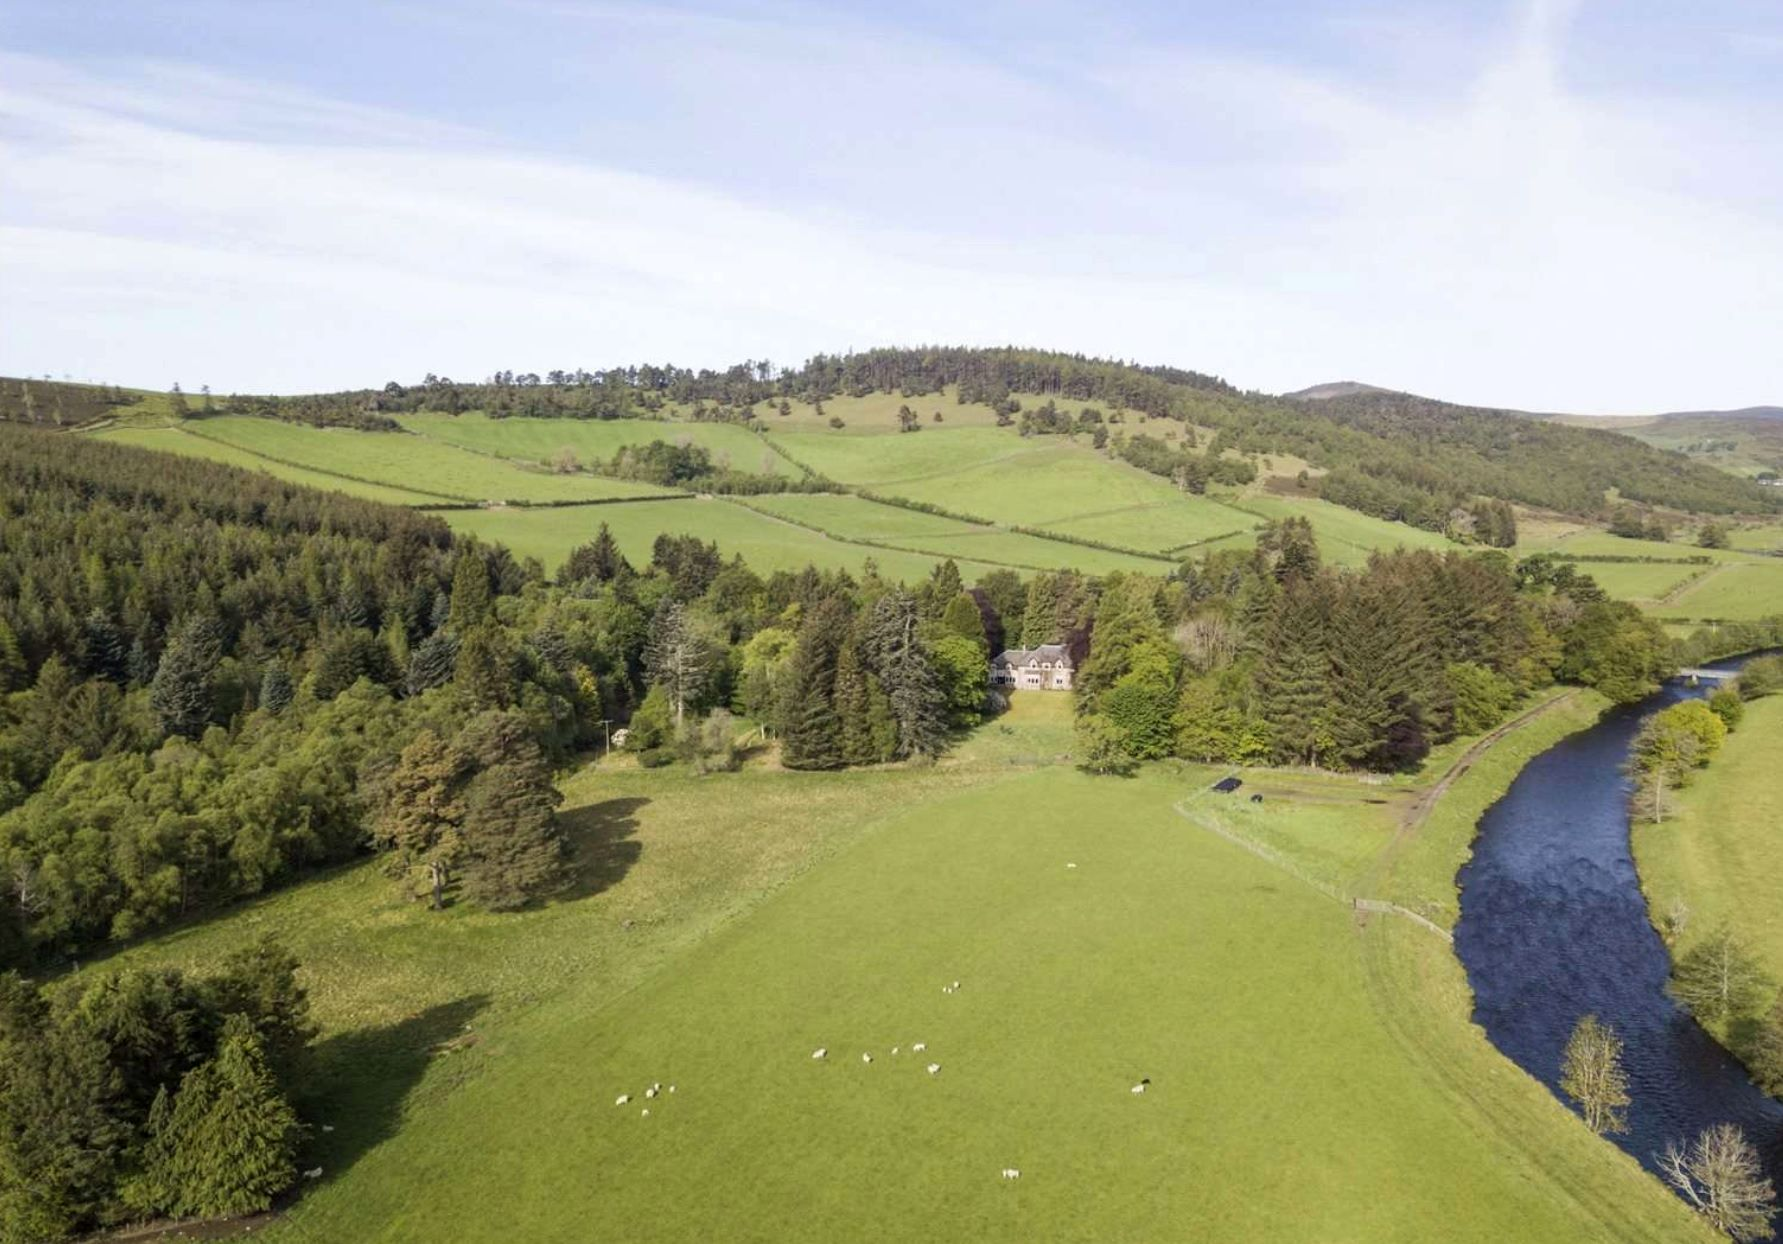 The entire estate consists of 975 acres (394.57ha) (Photo: Savills)